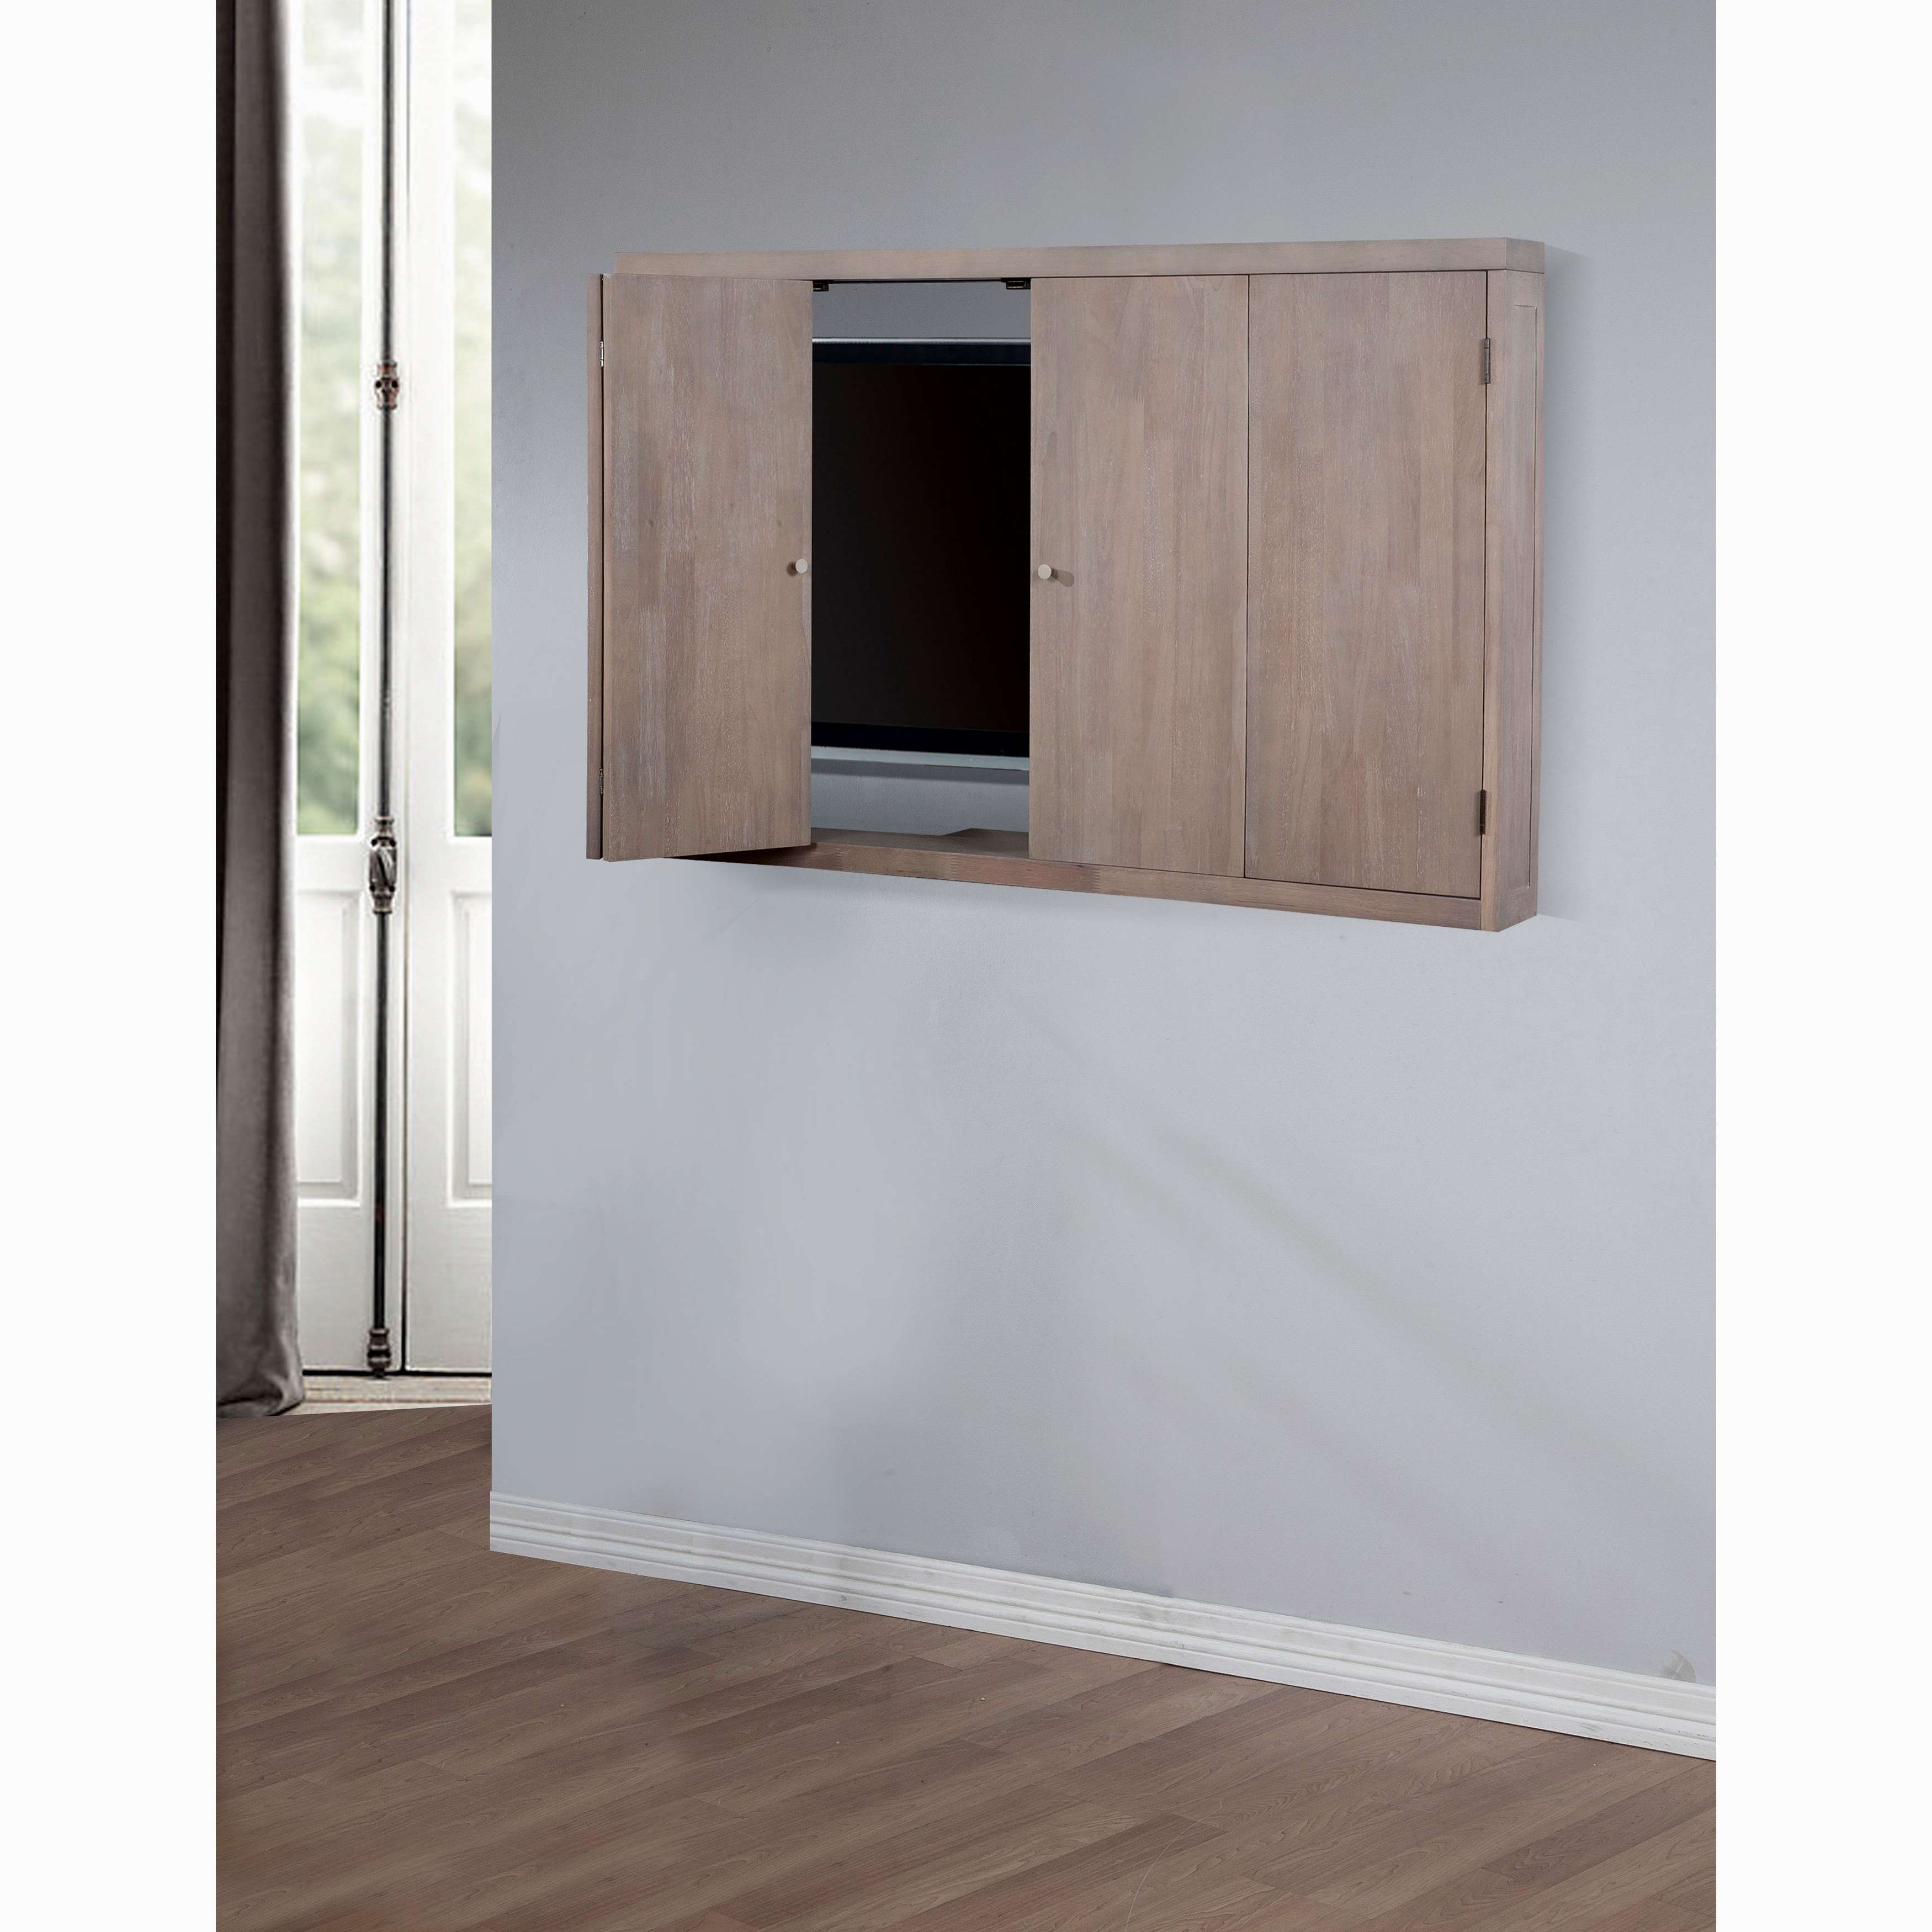 Wall Mounted Tv Cabinet With Sliding Doors – Imanisr Pertaining To Wall Mounted Tv Cabinets With Sliding Doors (View 19 of 20)